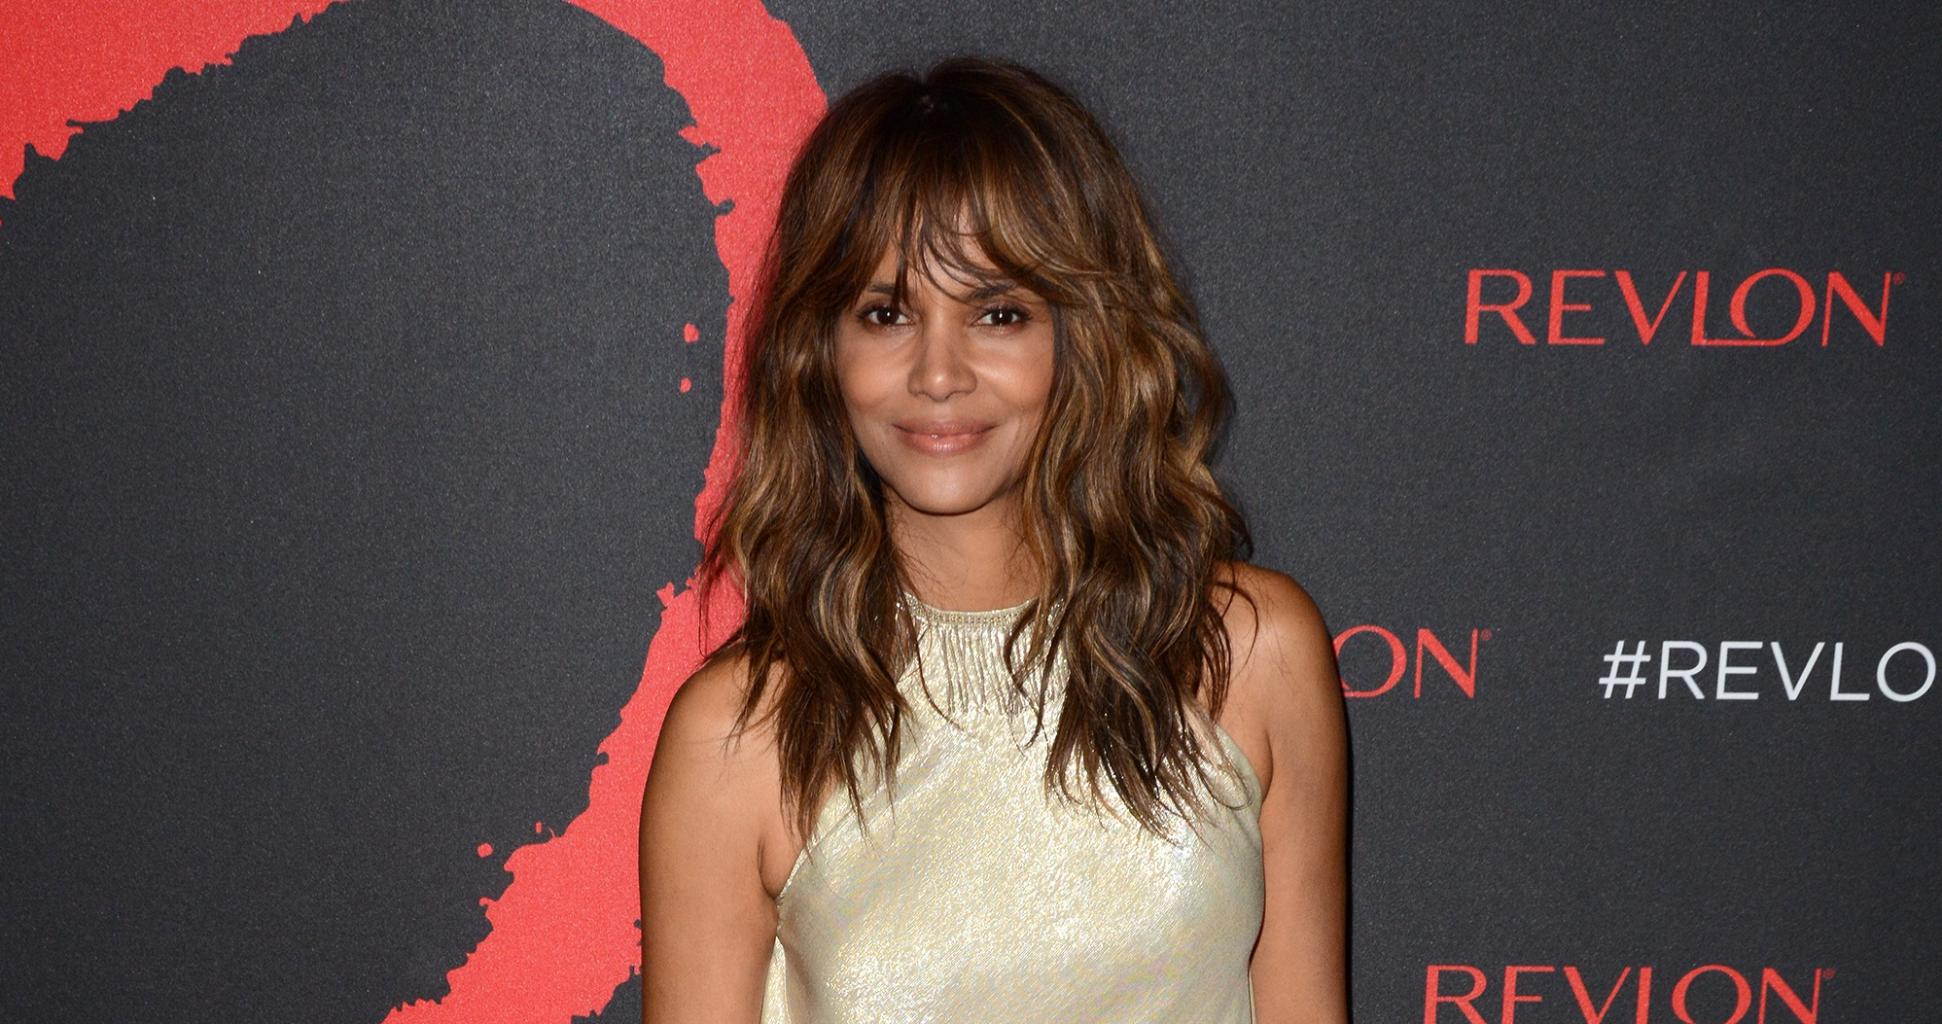 Halle Berry Says She Feels 'Guilty' After Three Failed Marriages: 'I've Suffered A Lot Of Pain And Anguish'